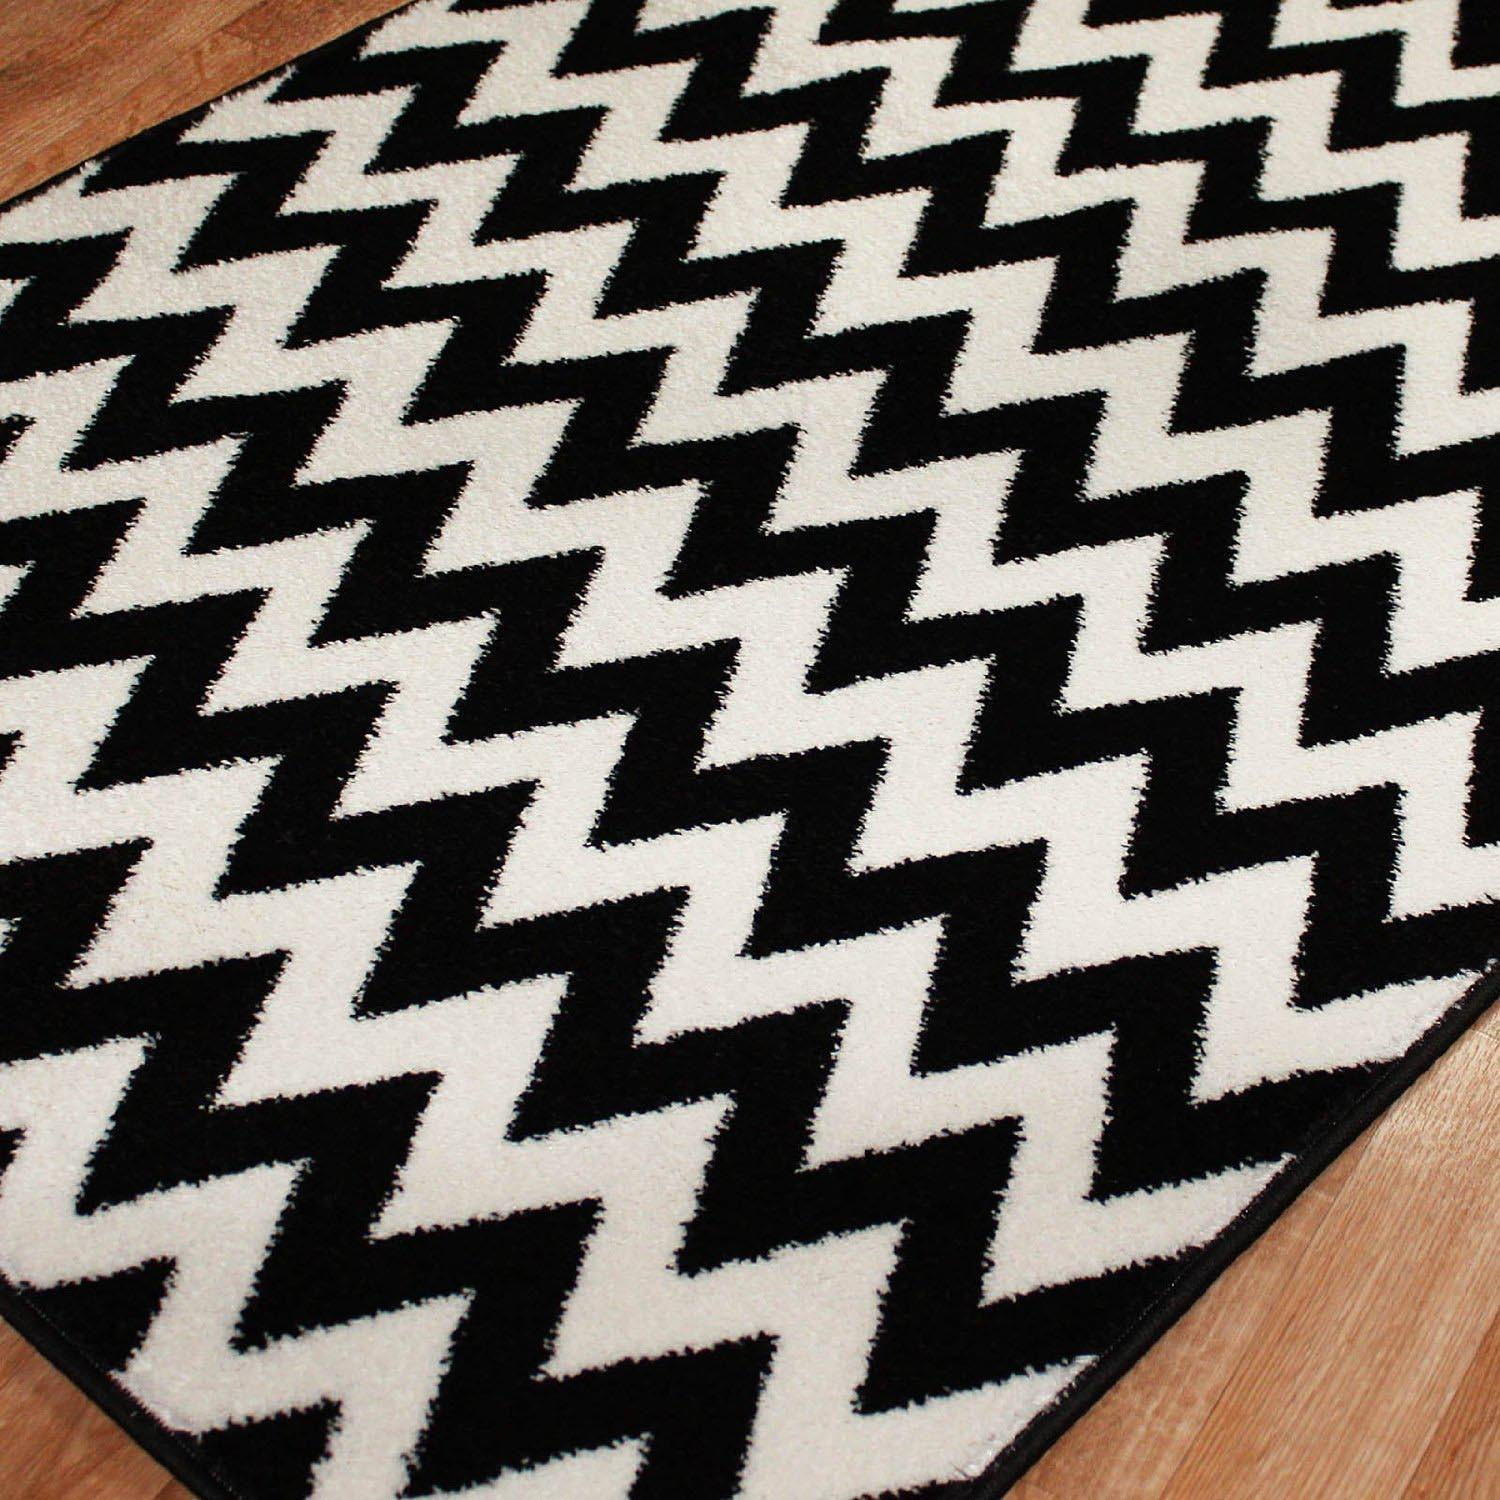 Black White Rug Best Decor Things